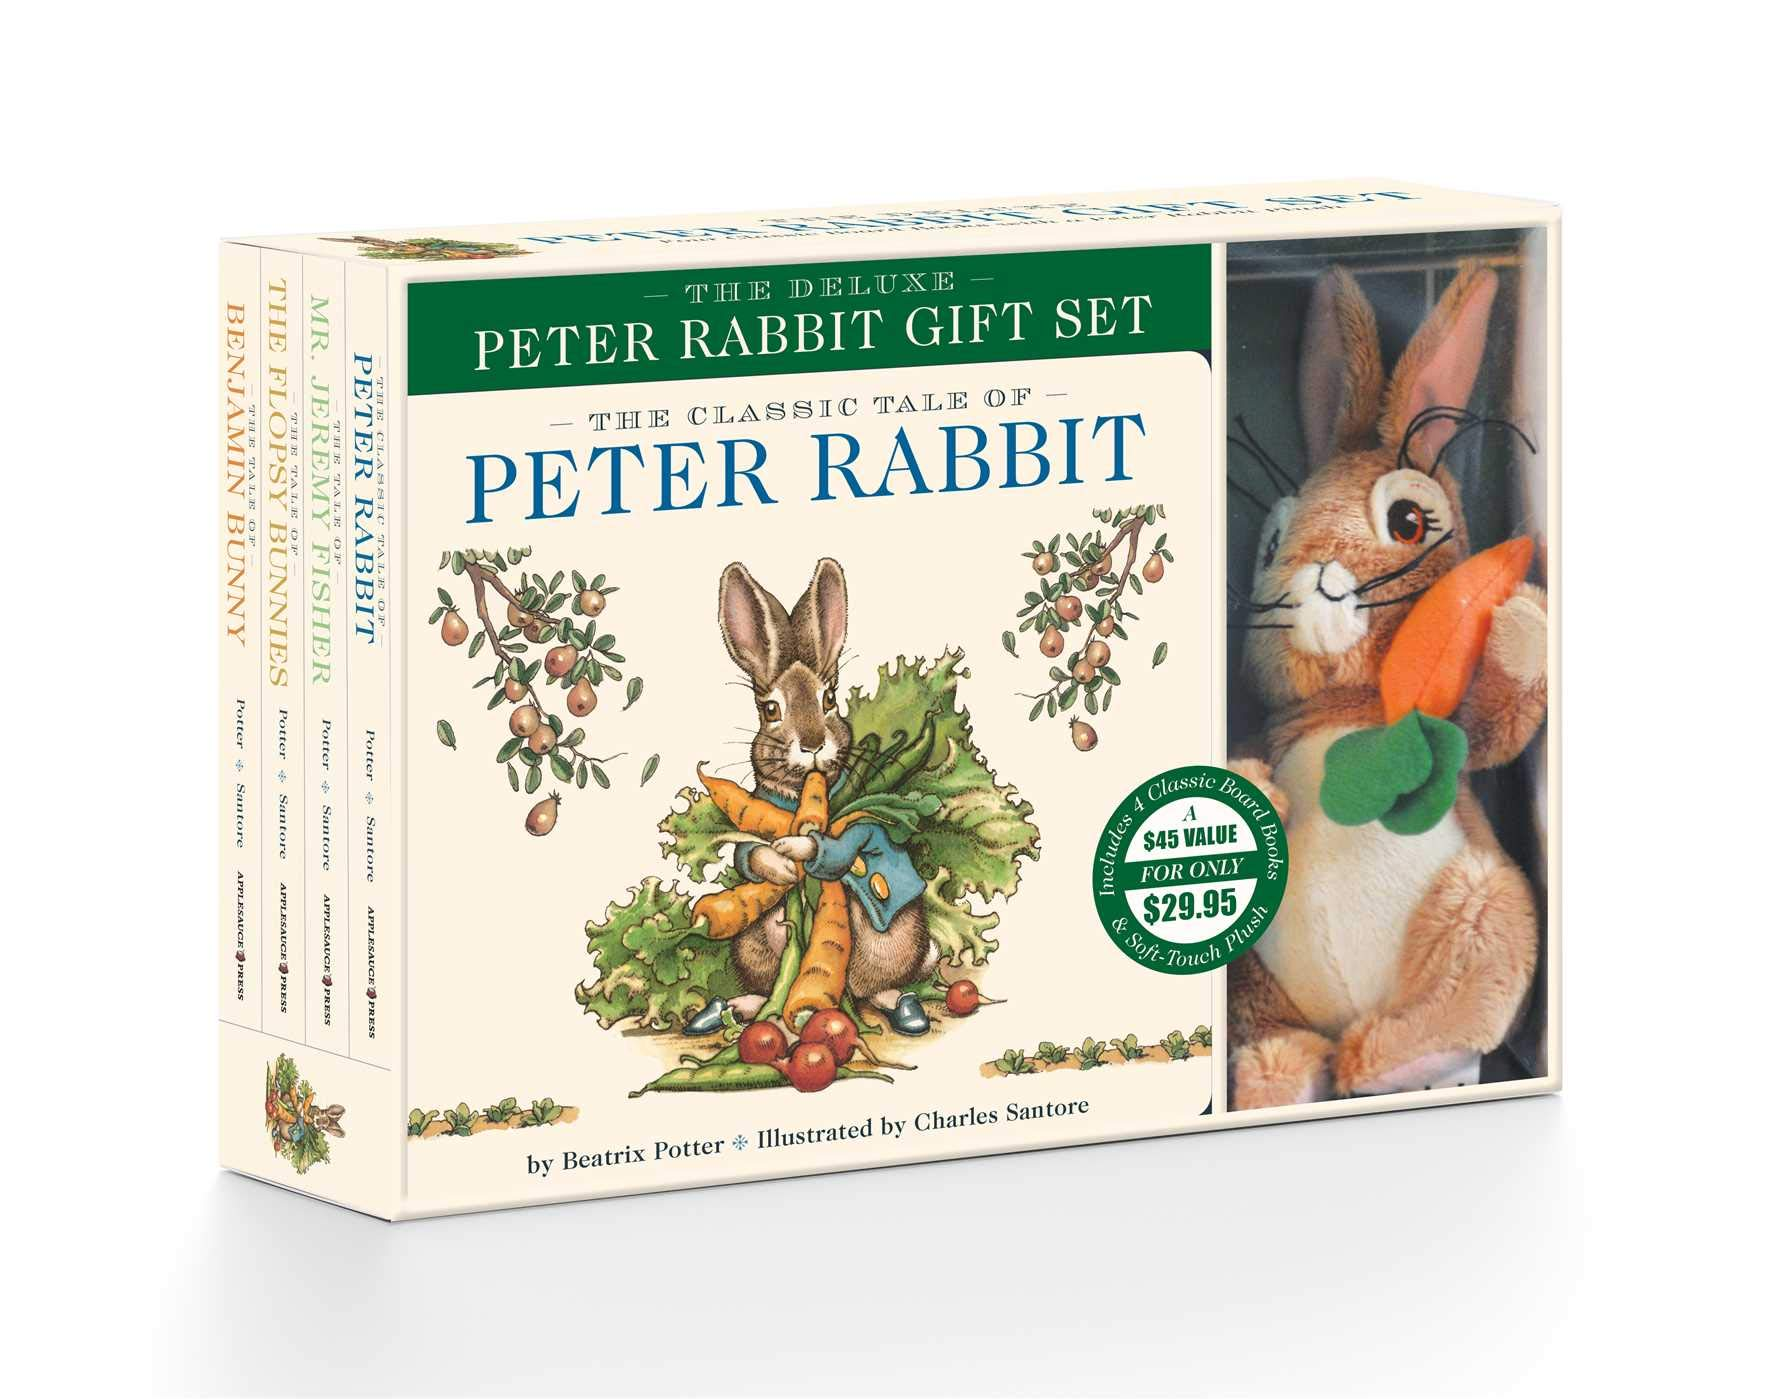 The Peter Rabbit Gift Set Including a Classic Board Book and Peter Rabbit Plush